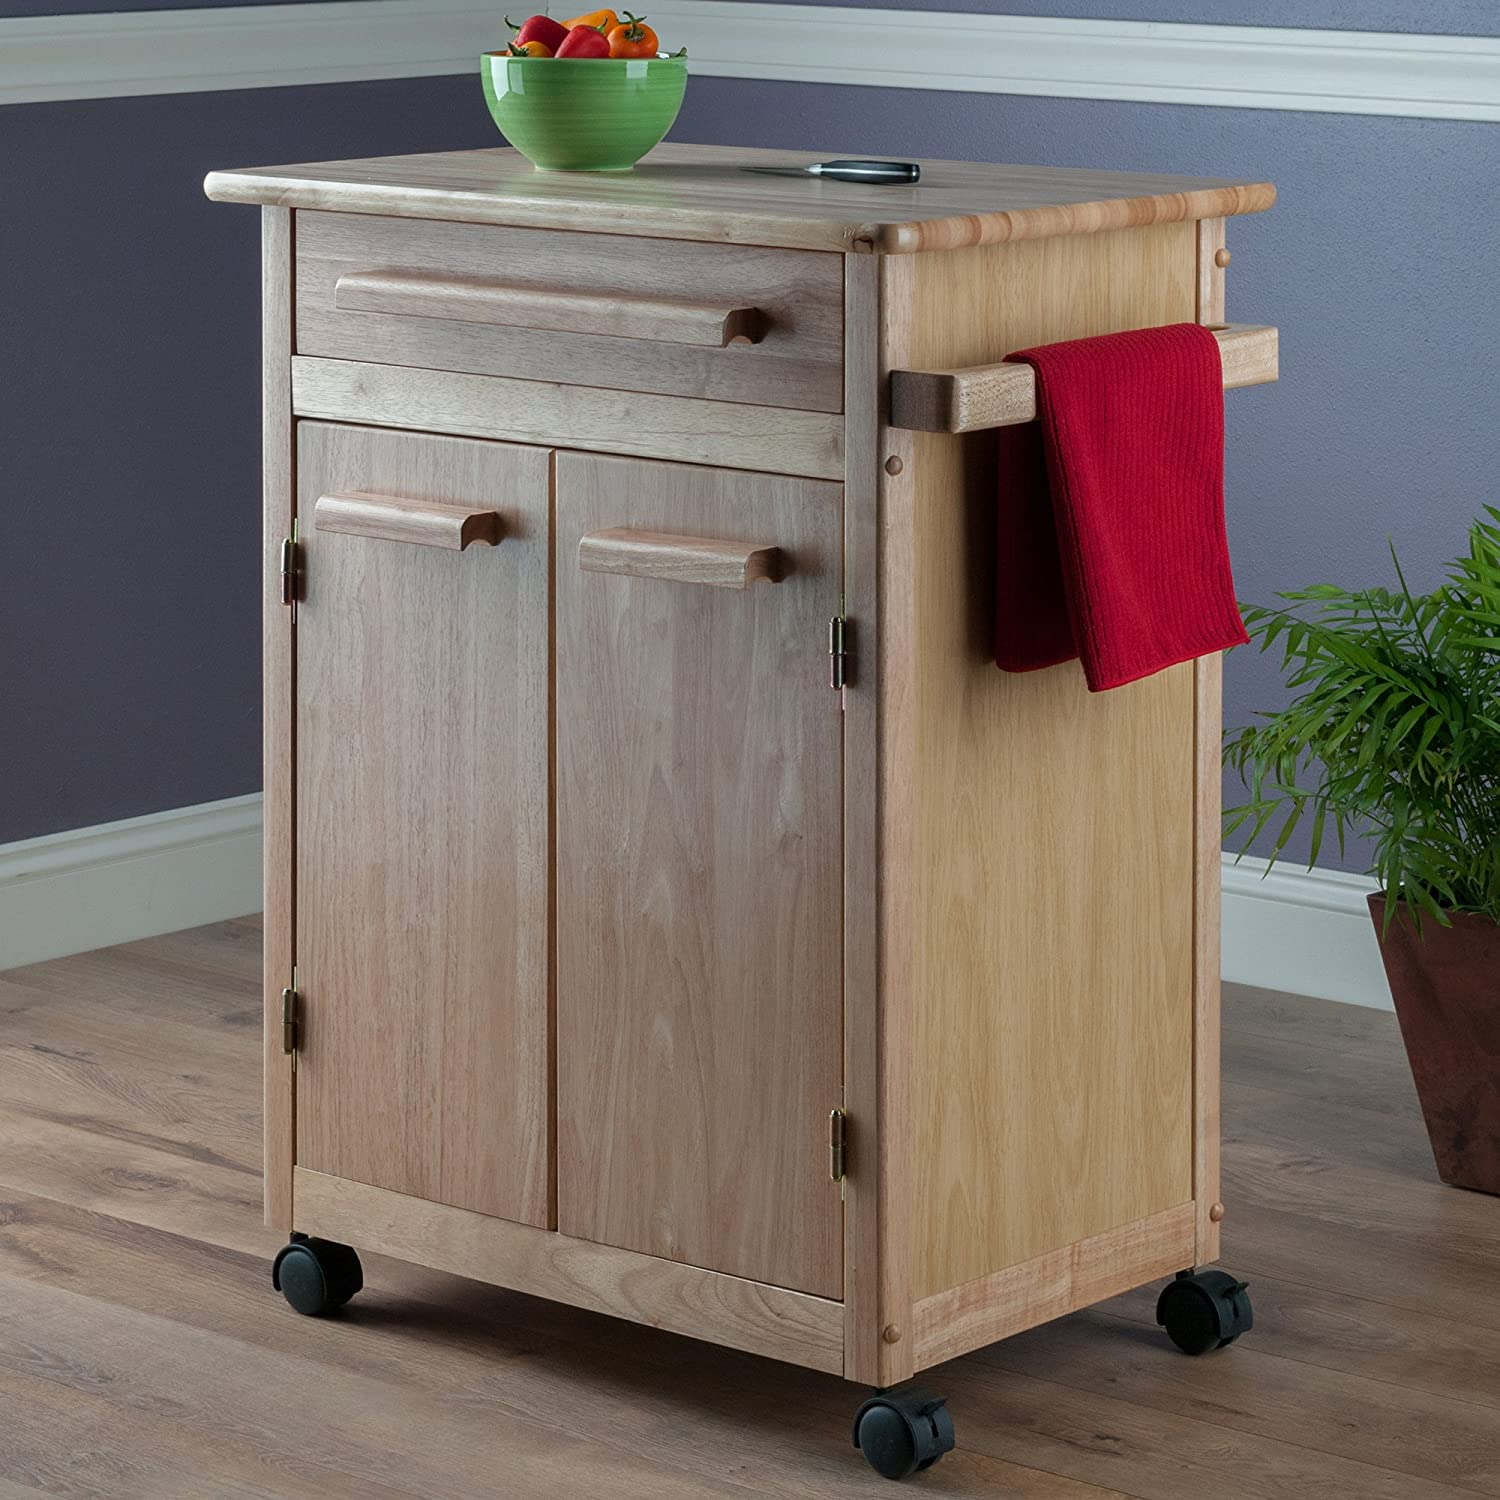 Winsome Wood Single Drawer Kitchen Cabinet